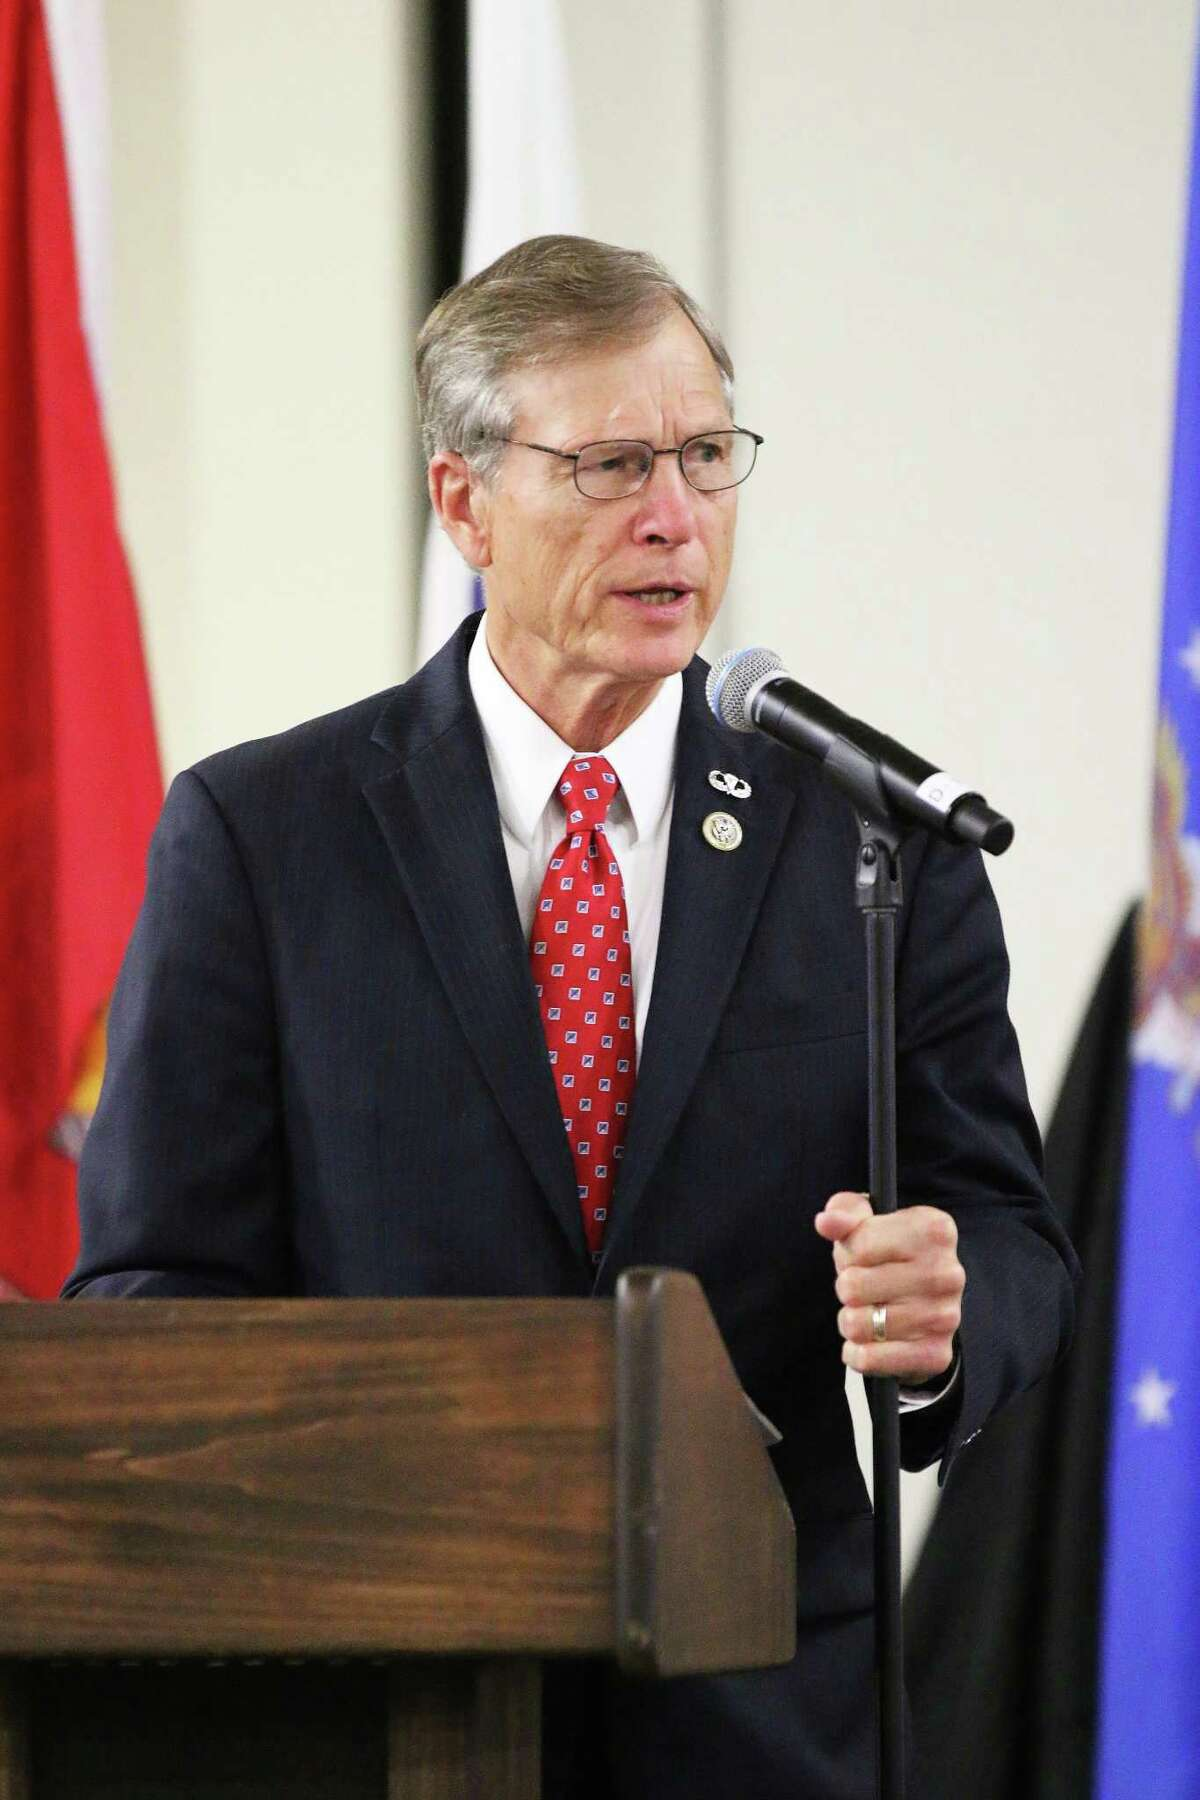 Brian Babin, left, a two-term congressment from the area's 36th District, is being challenged by RJ Boatman in the March 3 Republican primary.